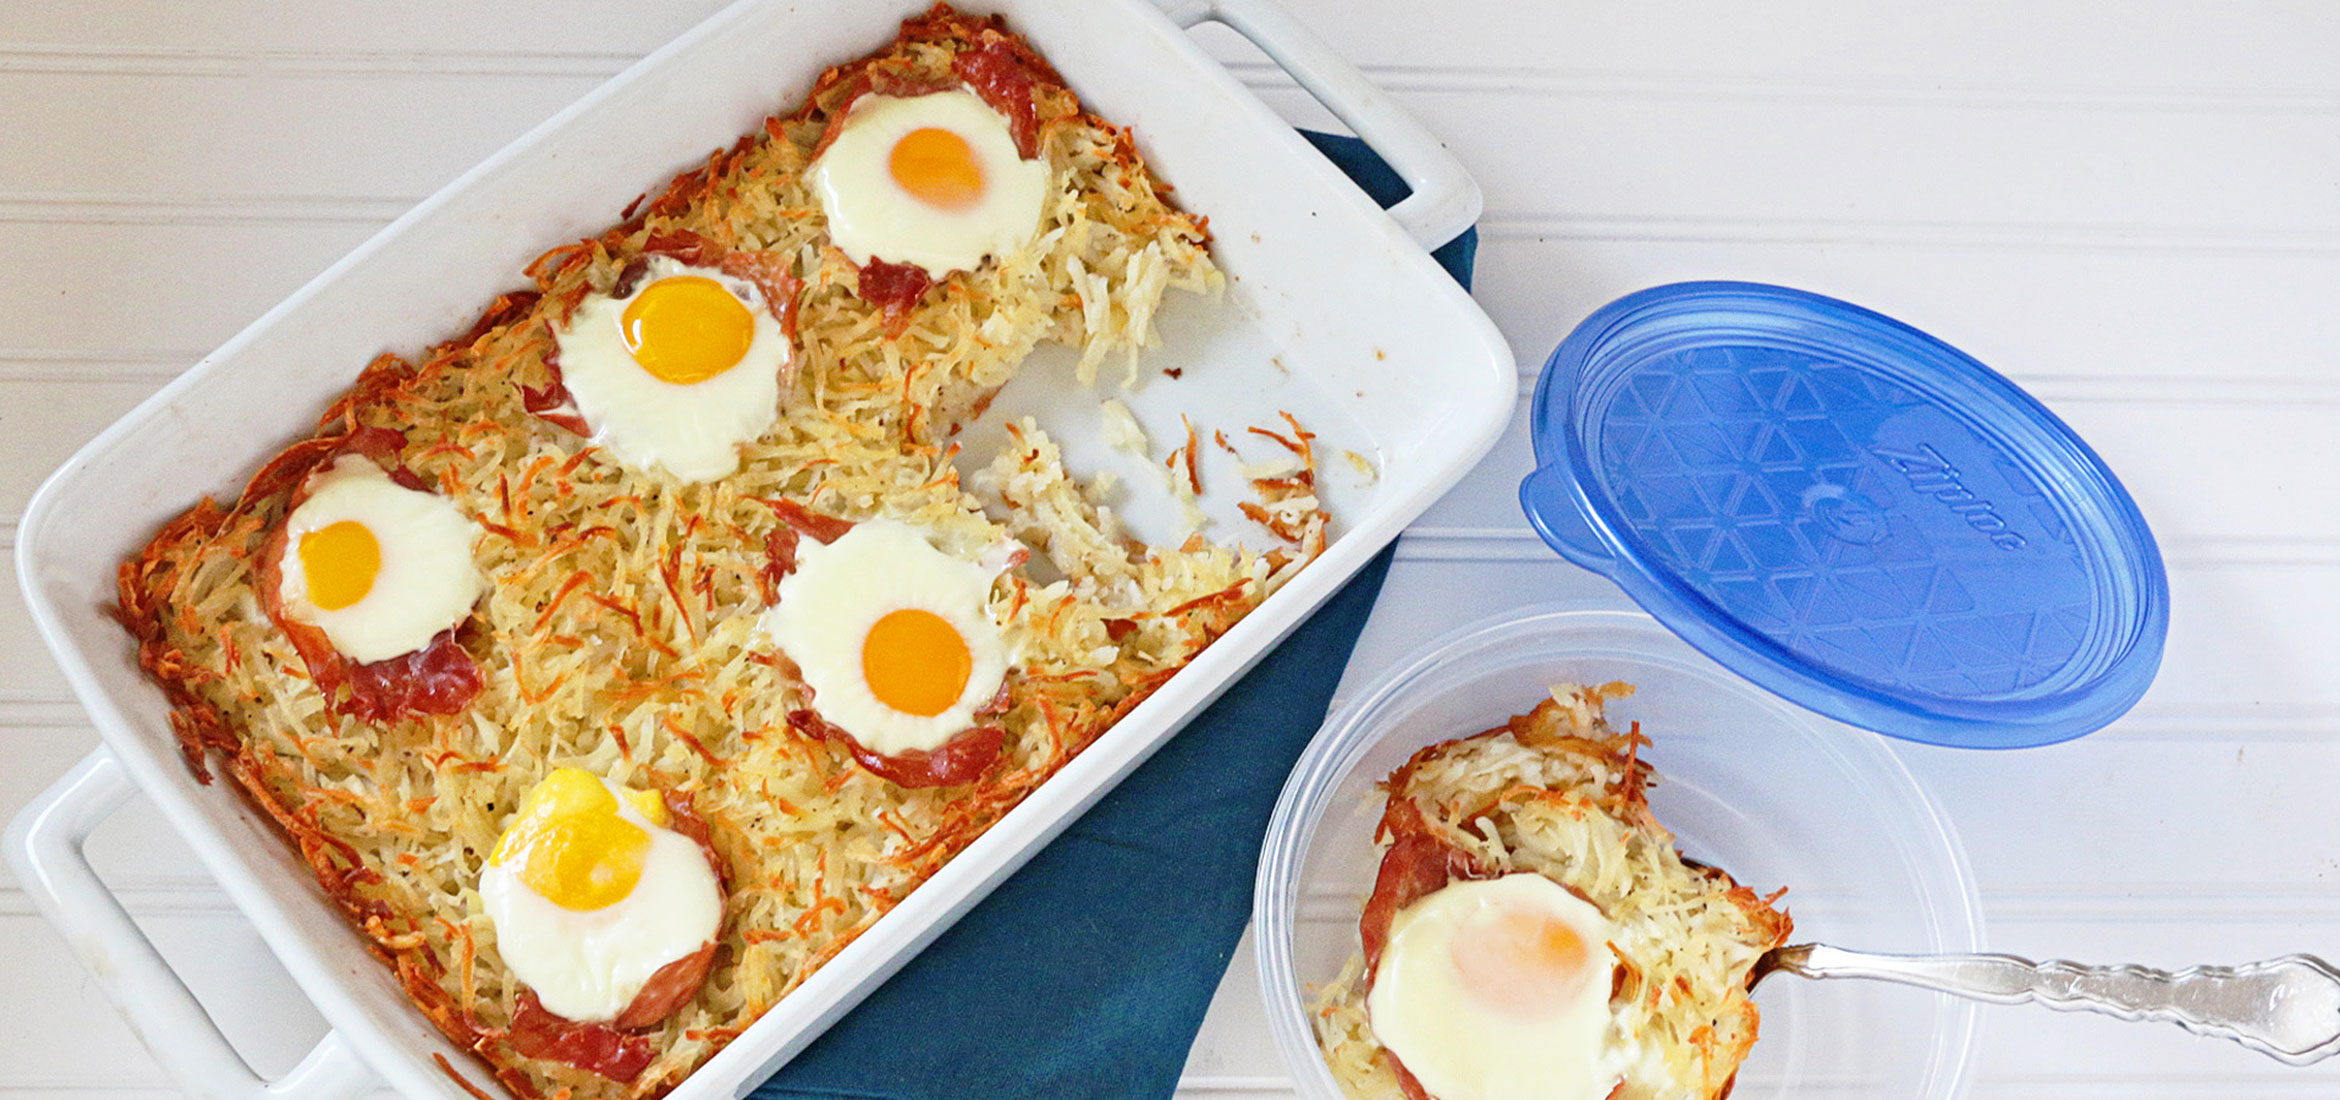 Hash Brown, Prosciutto and Egg Casserole